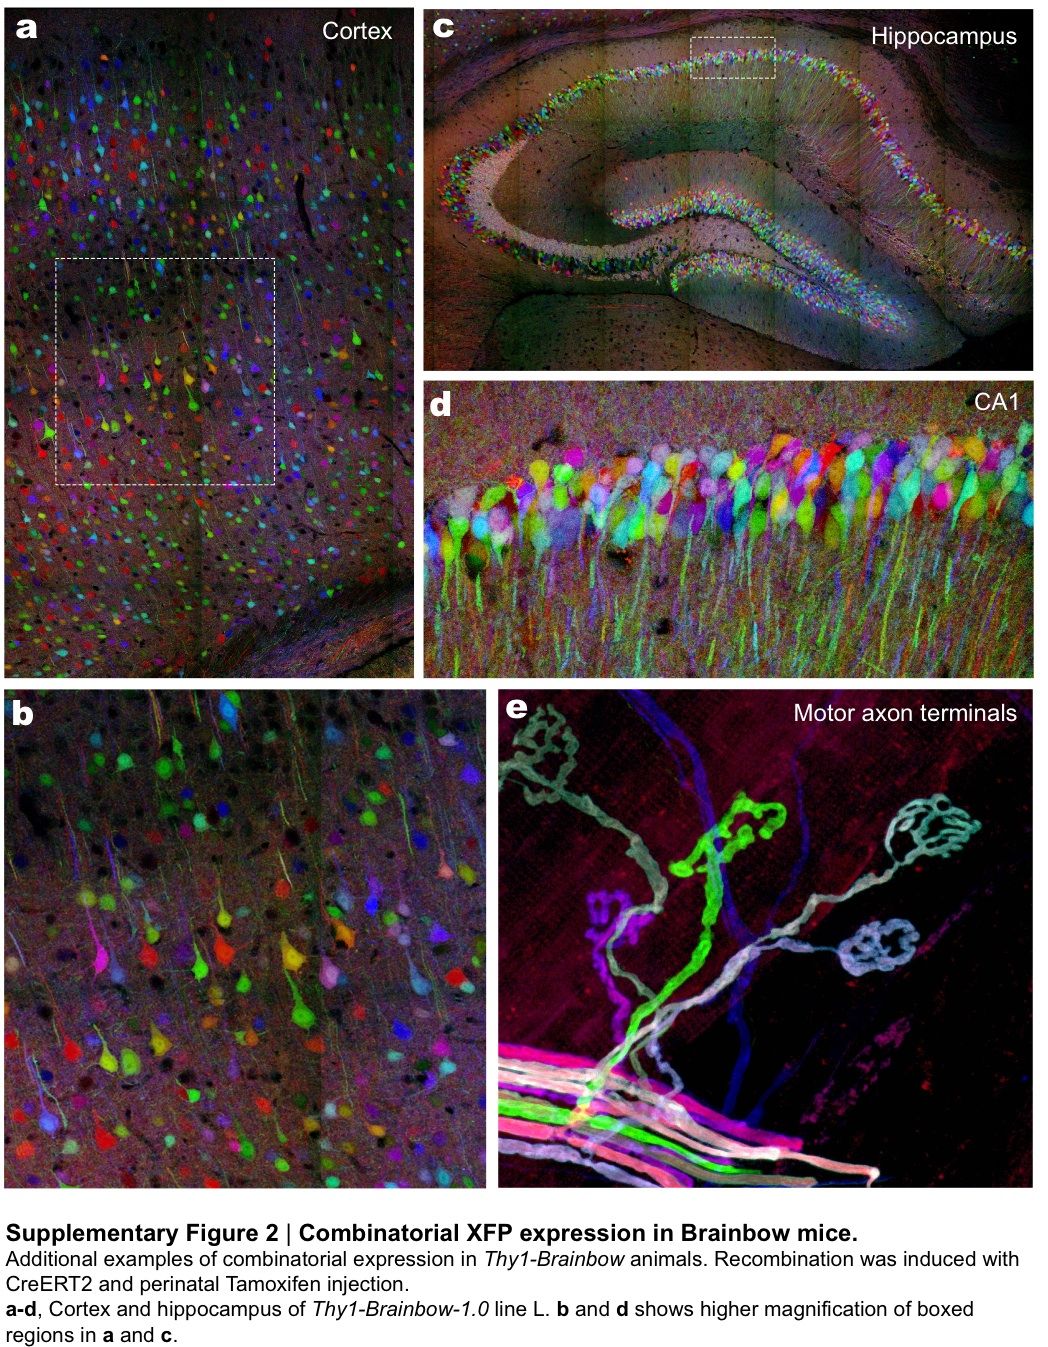 The cover of Nature, courtesy of the Lichtman and Sanes labs, shows a portion of the hippocampus within a 'Brainbow' mouse. The multicolored neurons of the dentate gyrus (bottom) lie beneath the cells of the arching CA1 region, while neurons of the cerebral cortex can be seen twinkling above.